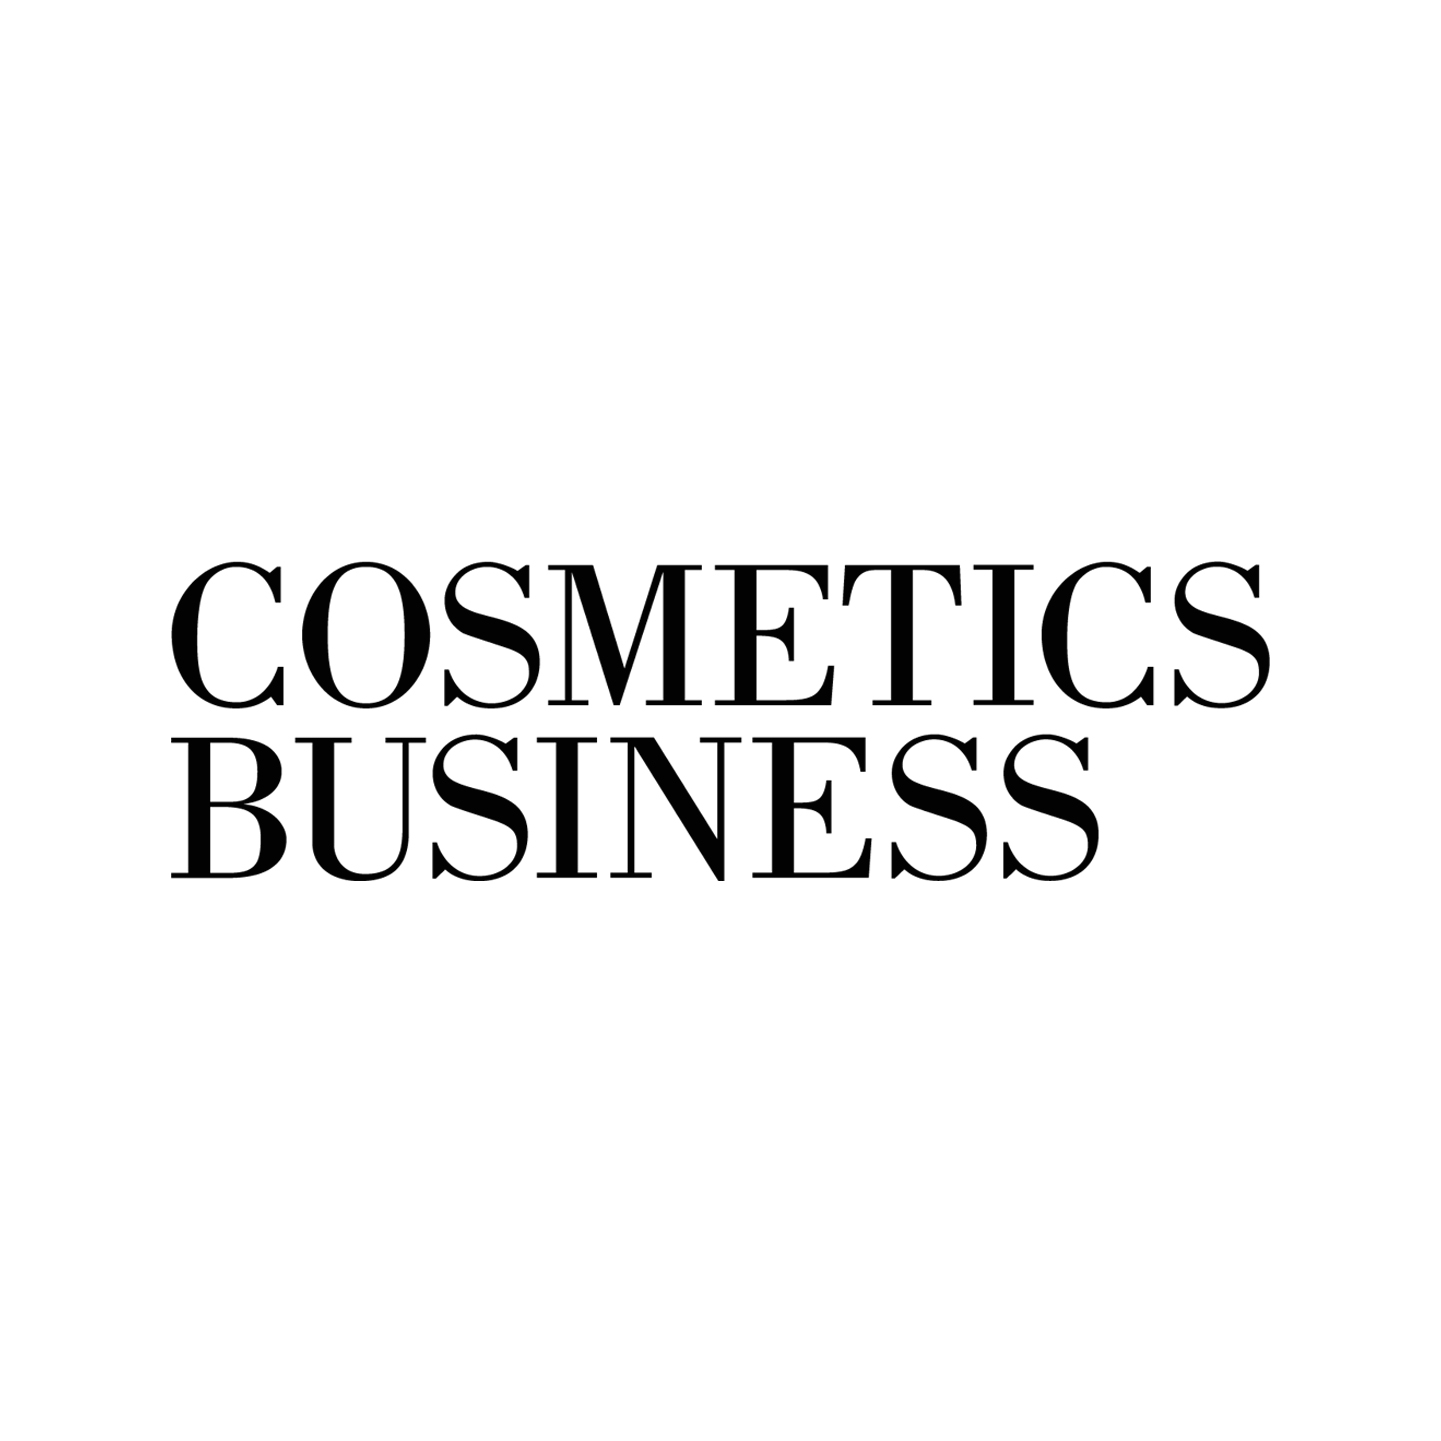 cosmetics_business_squared